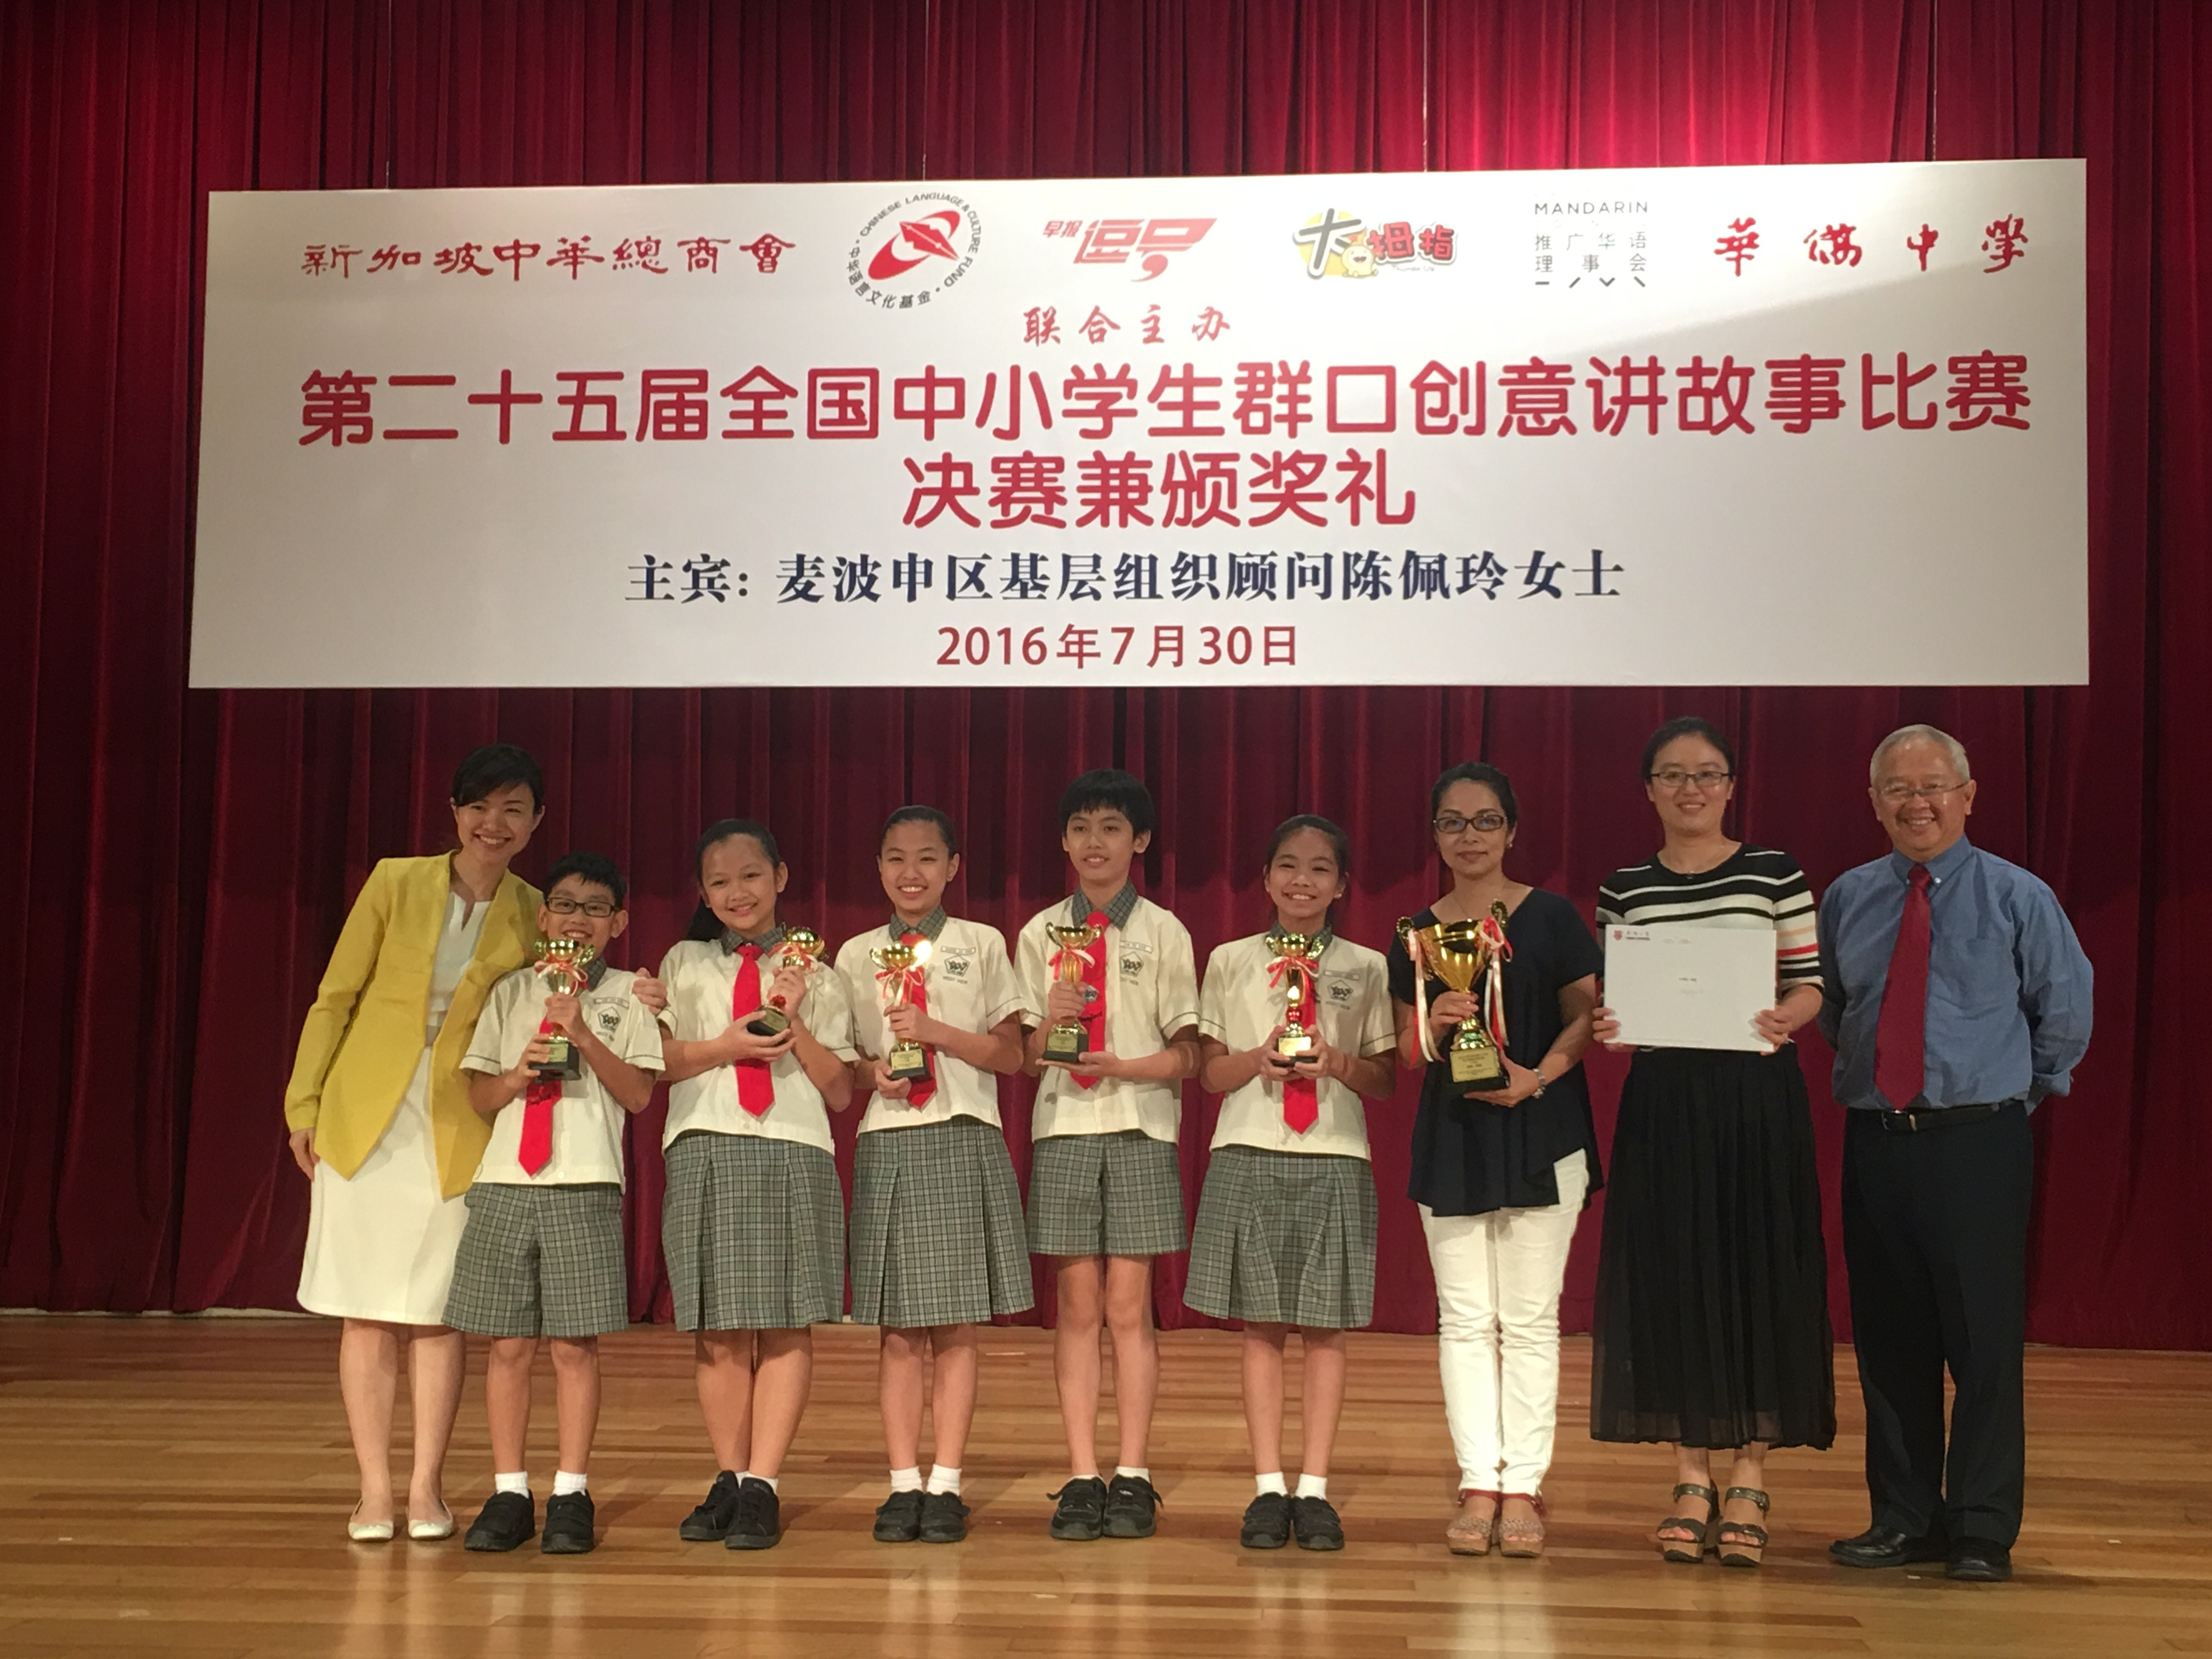 Receiving the award from MP Ms Tin Pei Ling.jpeg